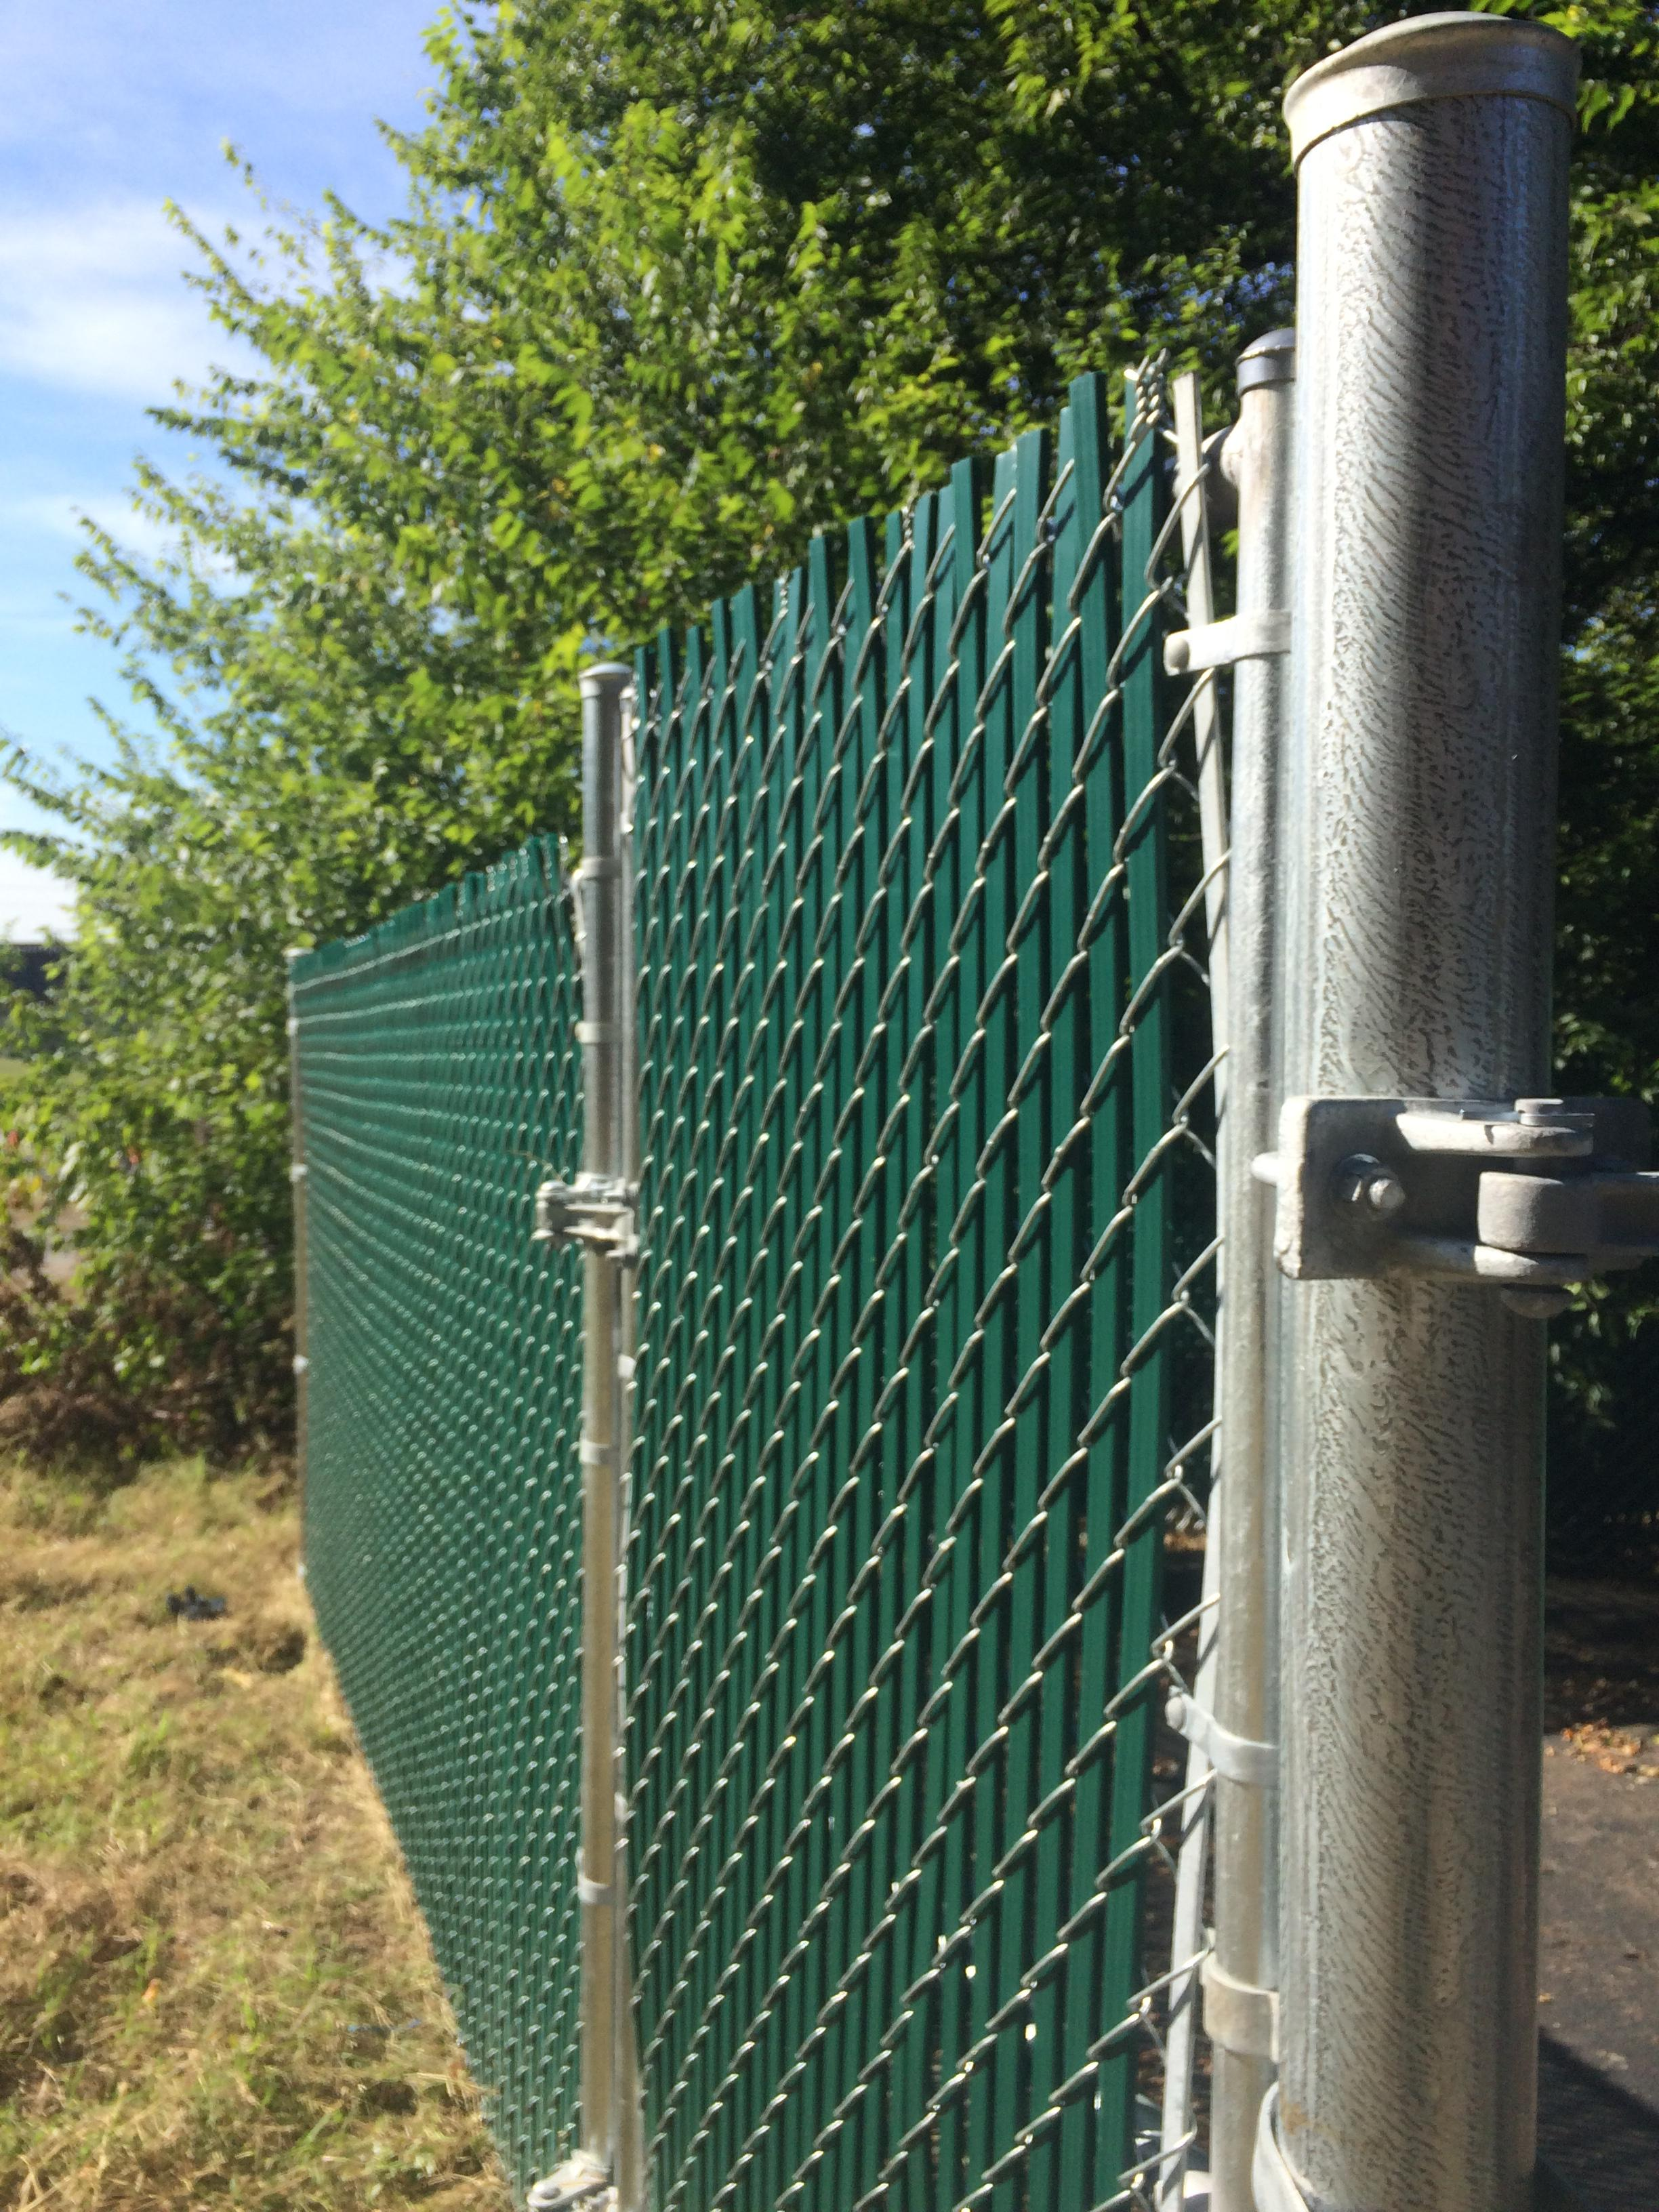 Double panel chain link fence with green privacy slats hides a dumpster at River Lofts in Richmond, VA